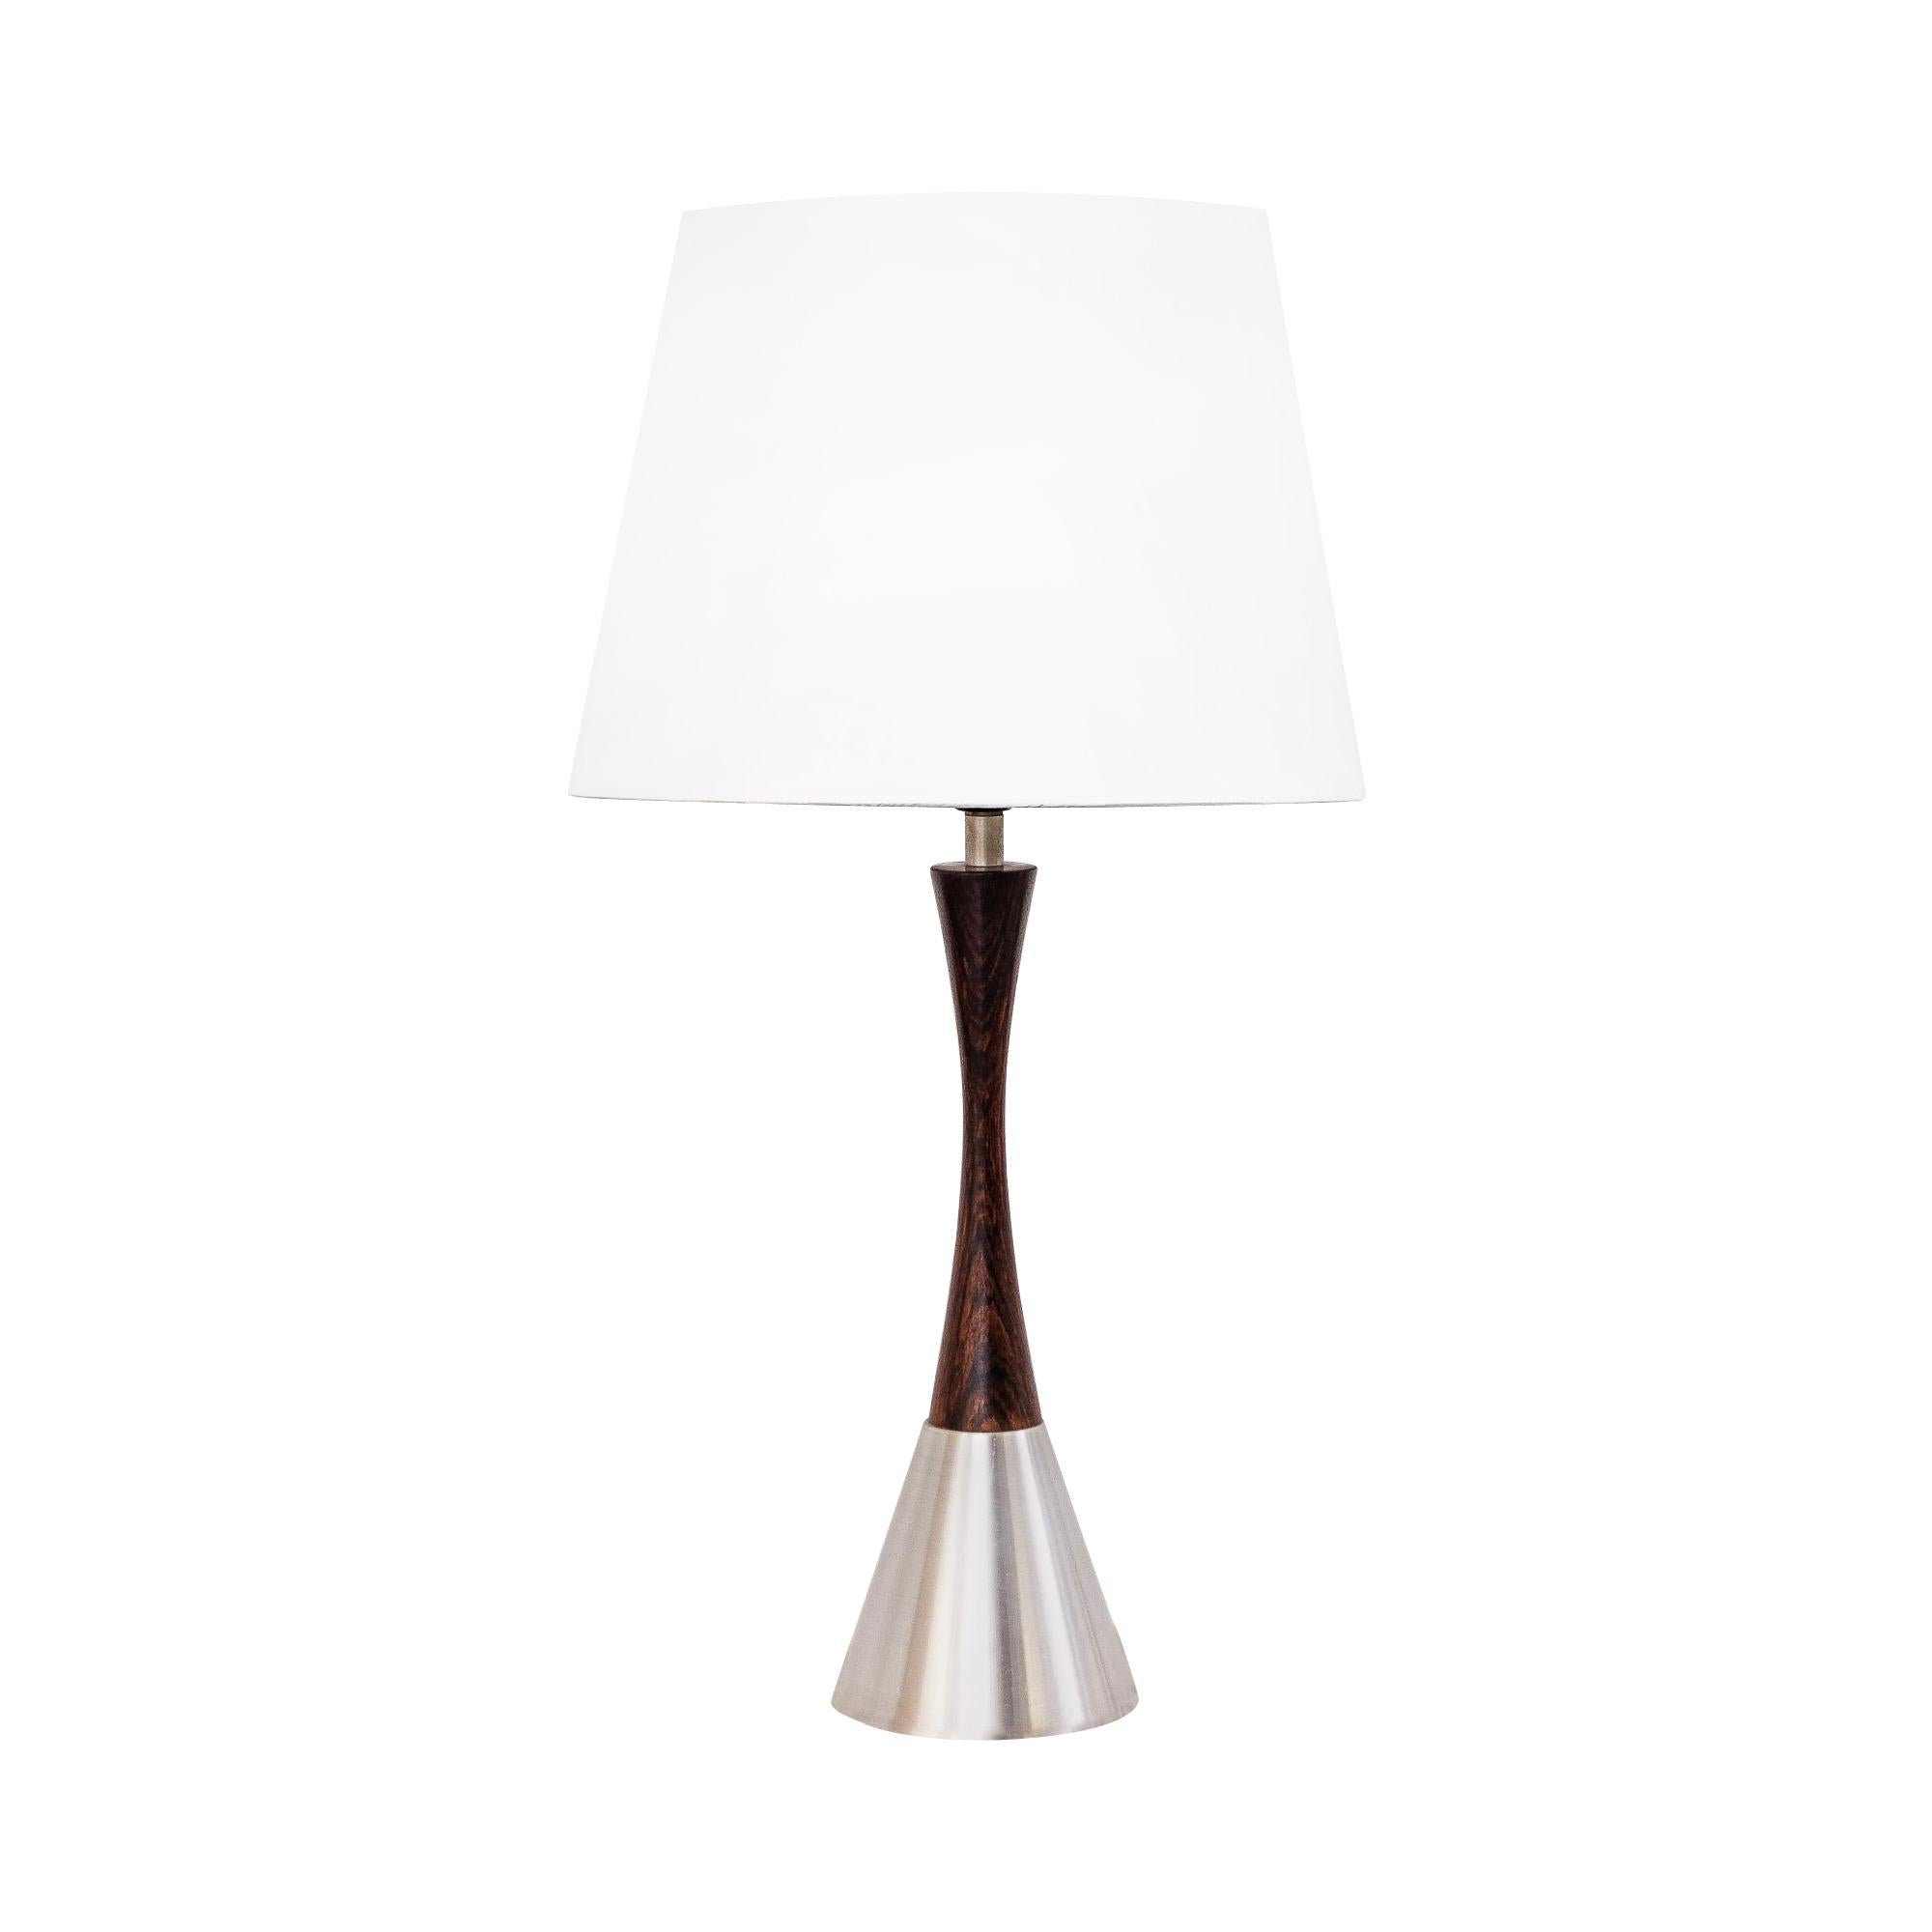 Mid-Century Modern Table Lamp by Bergboms, Sweden, 1960s